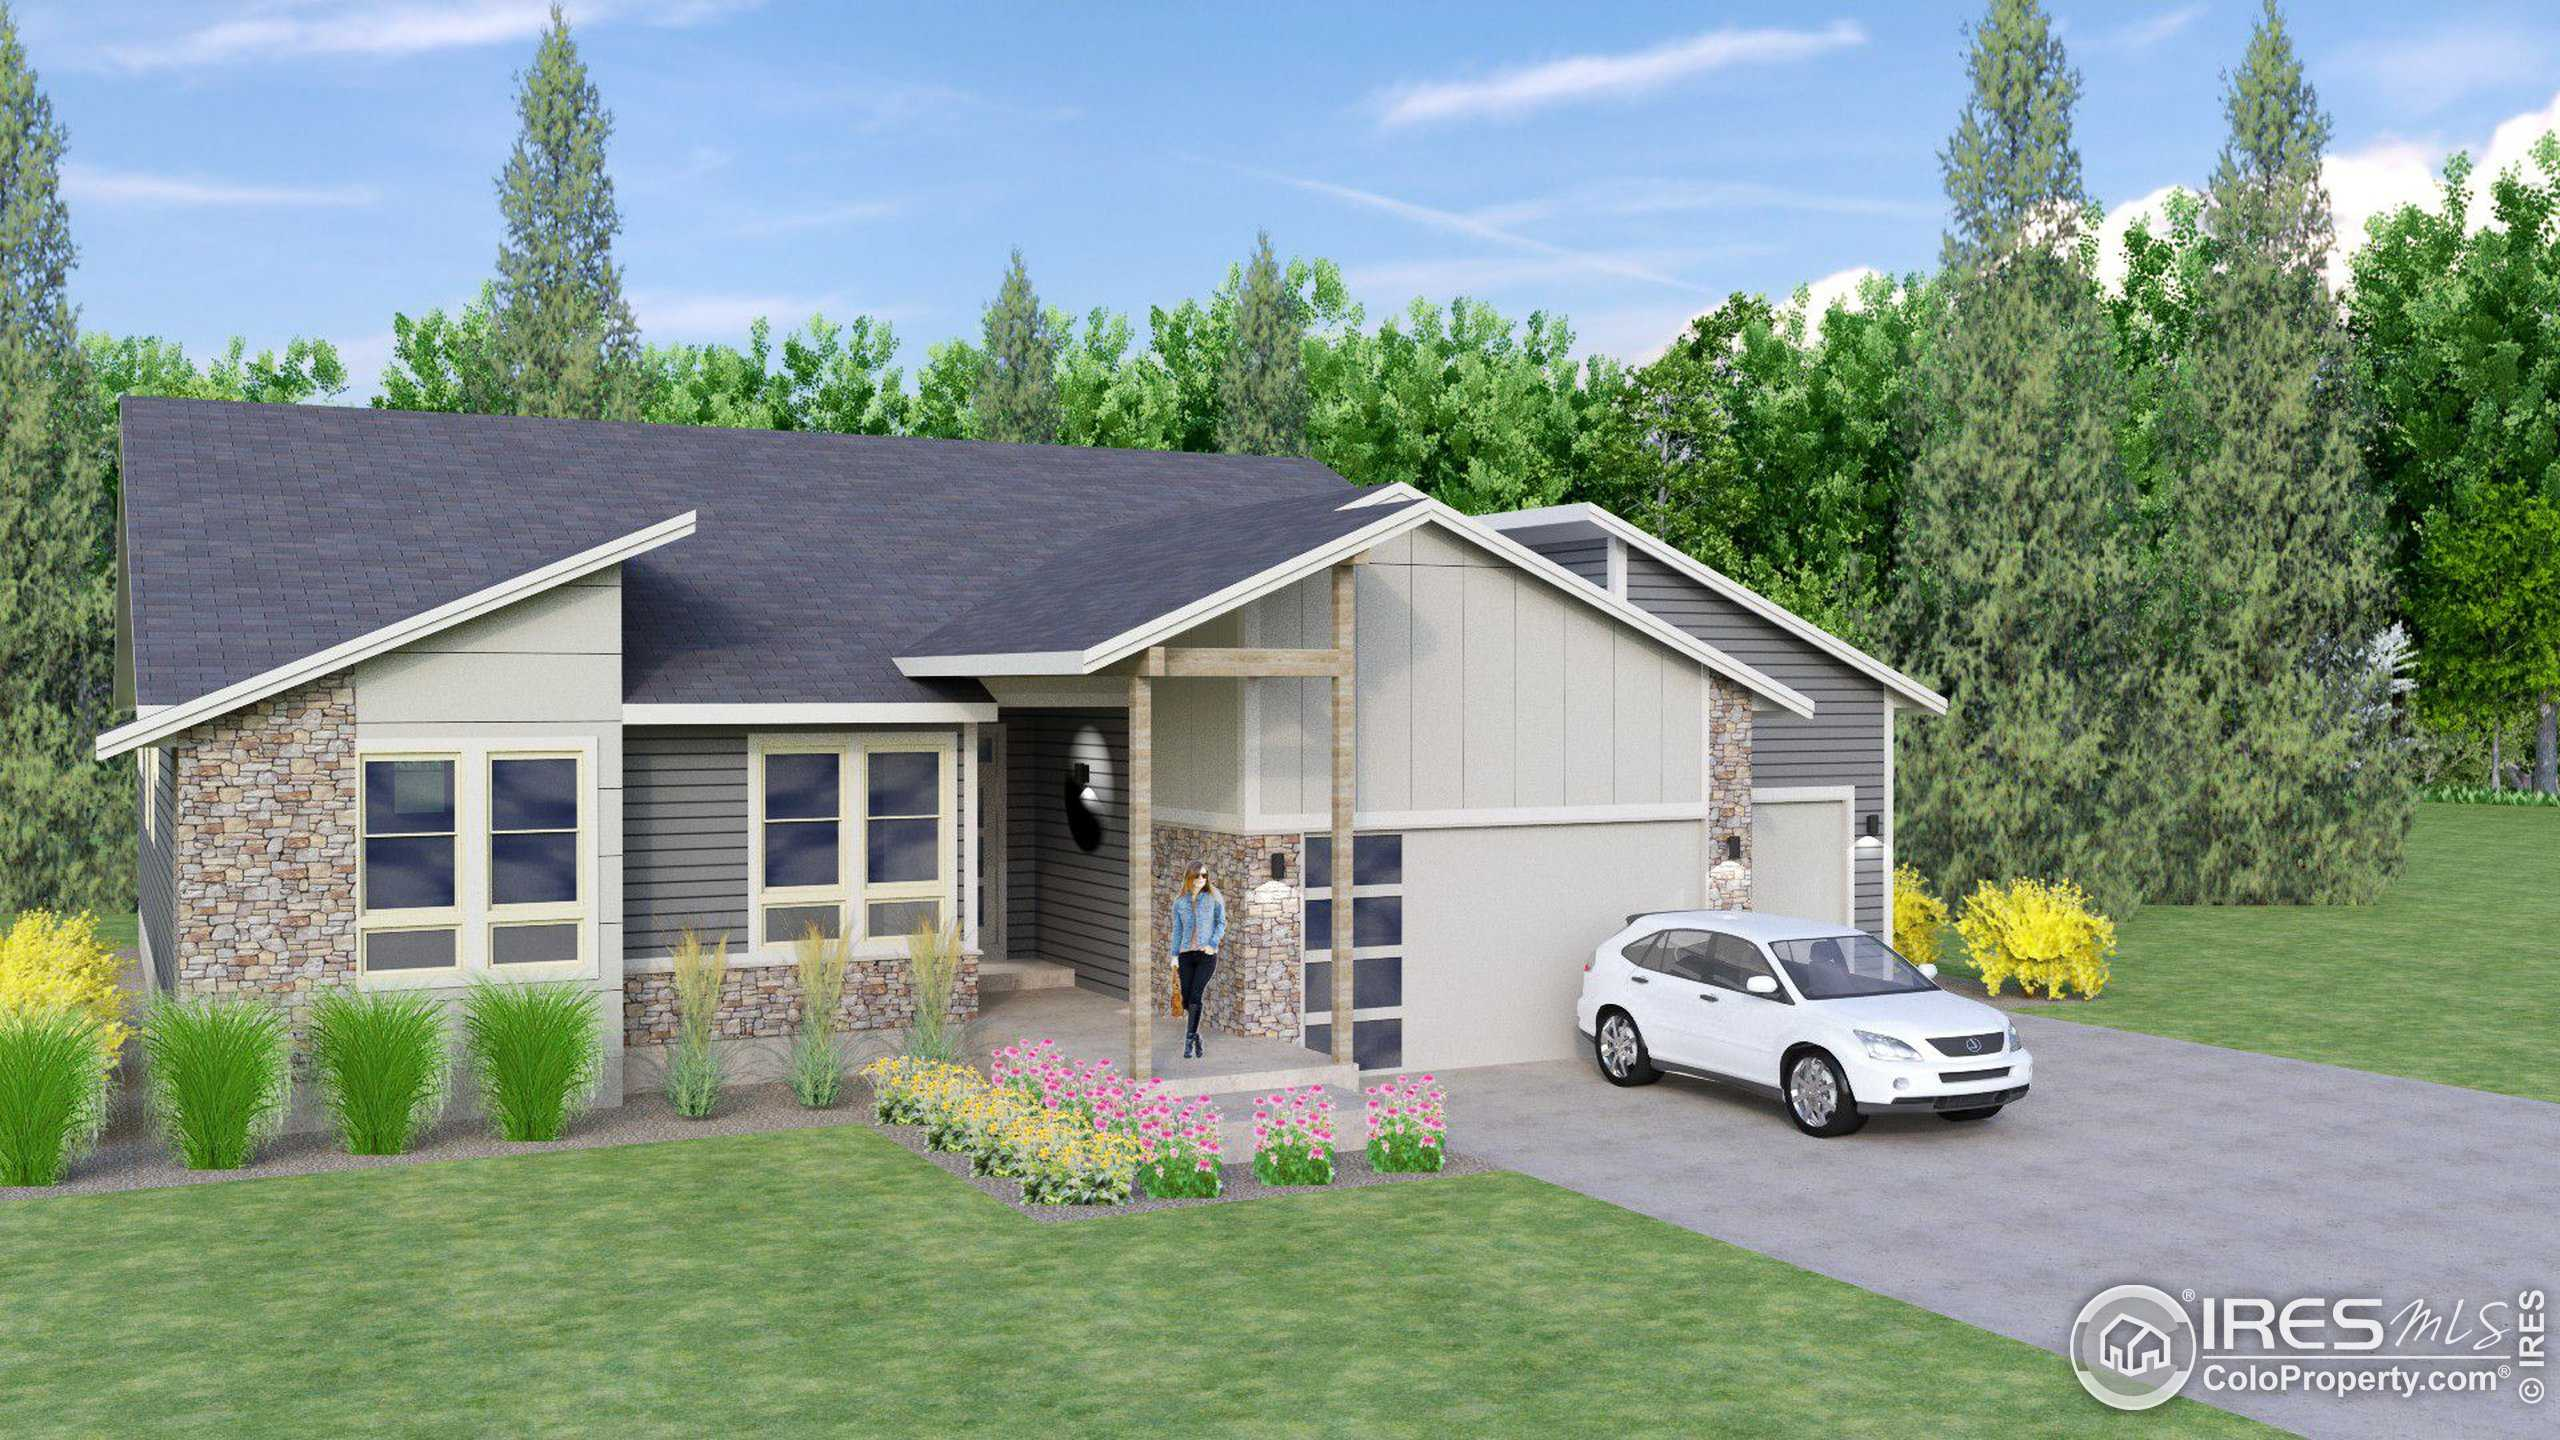 $590,510 - 3Br/3Ba -  for Sale in Tailholt, Severance